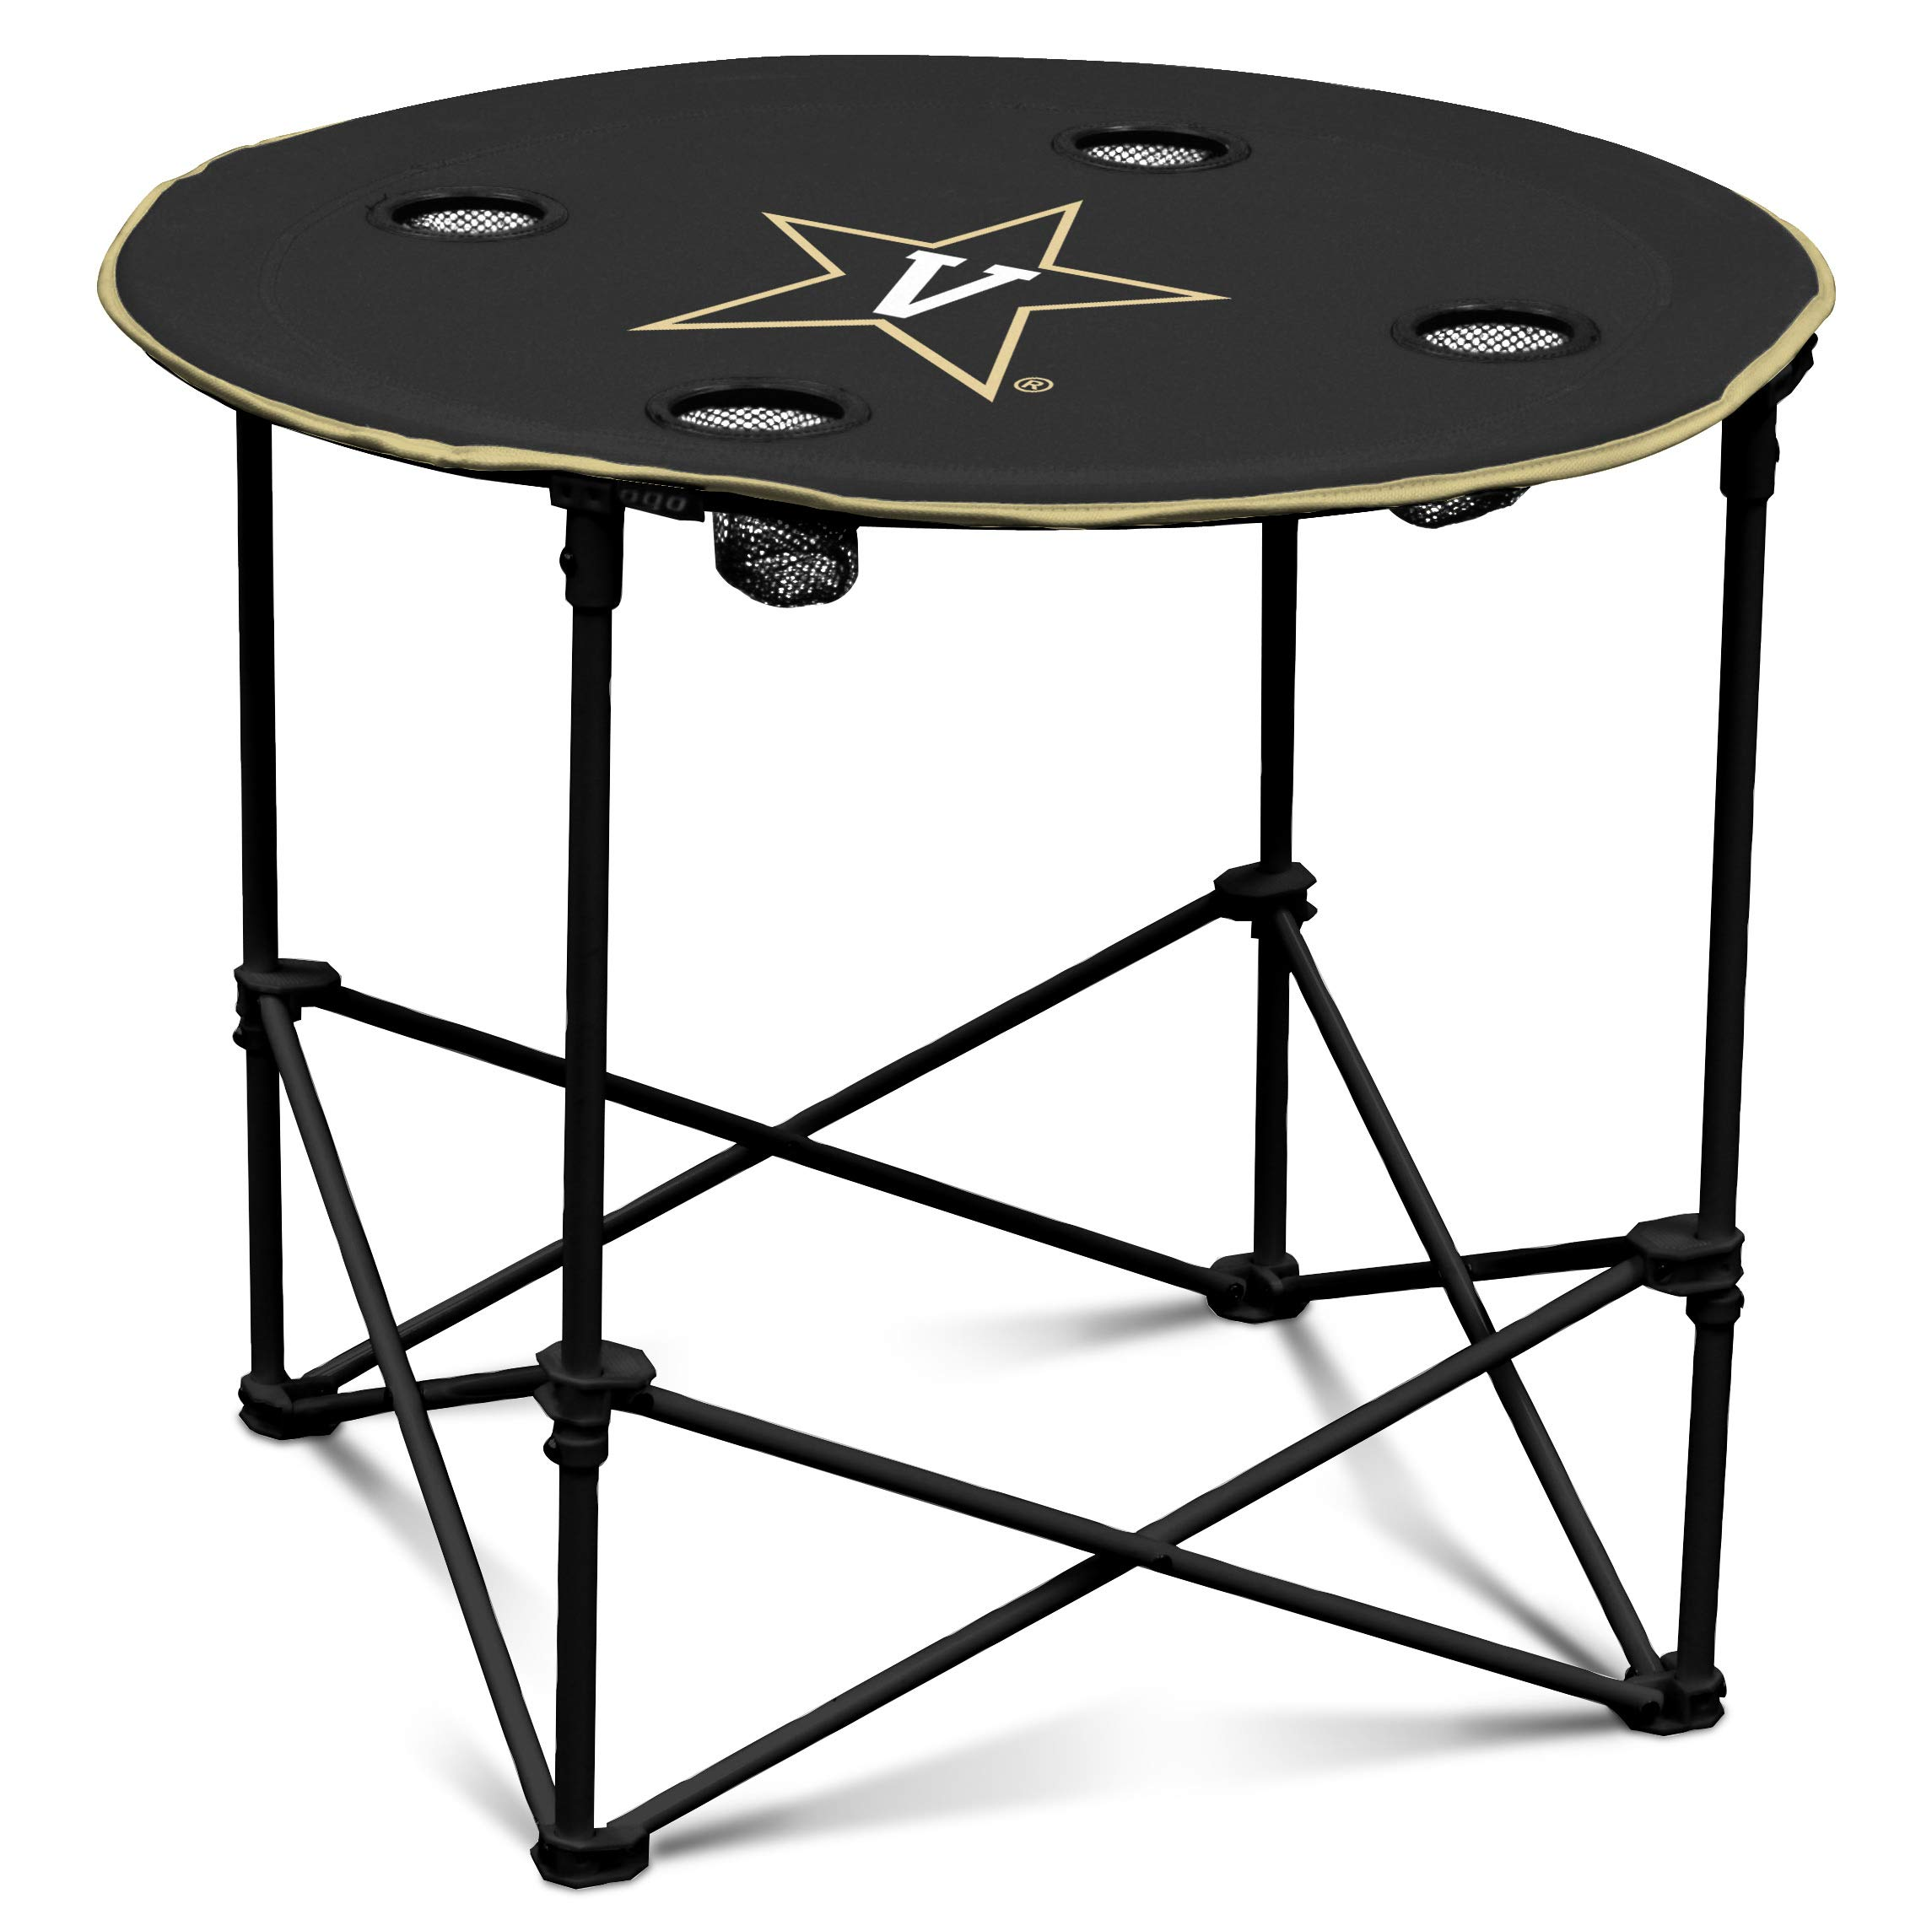 Vanderbilt Commodores Collapsible Round Table with 4 Cup Holders and Carry Bag by Logo Brands